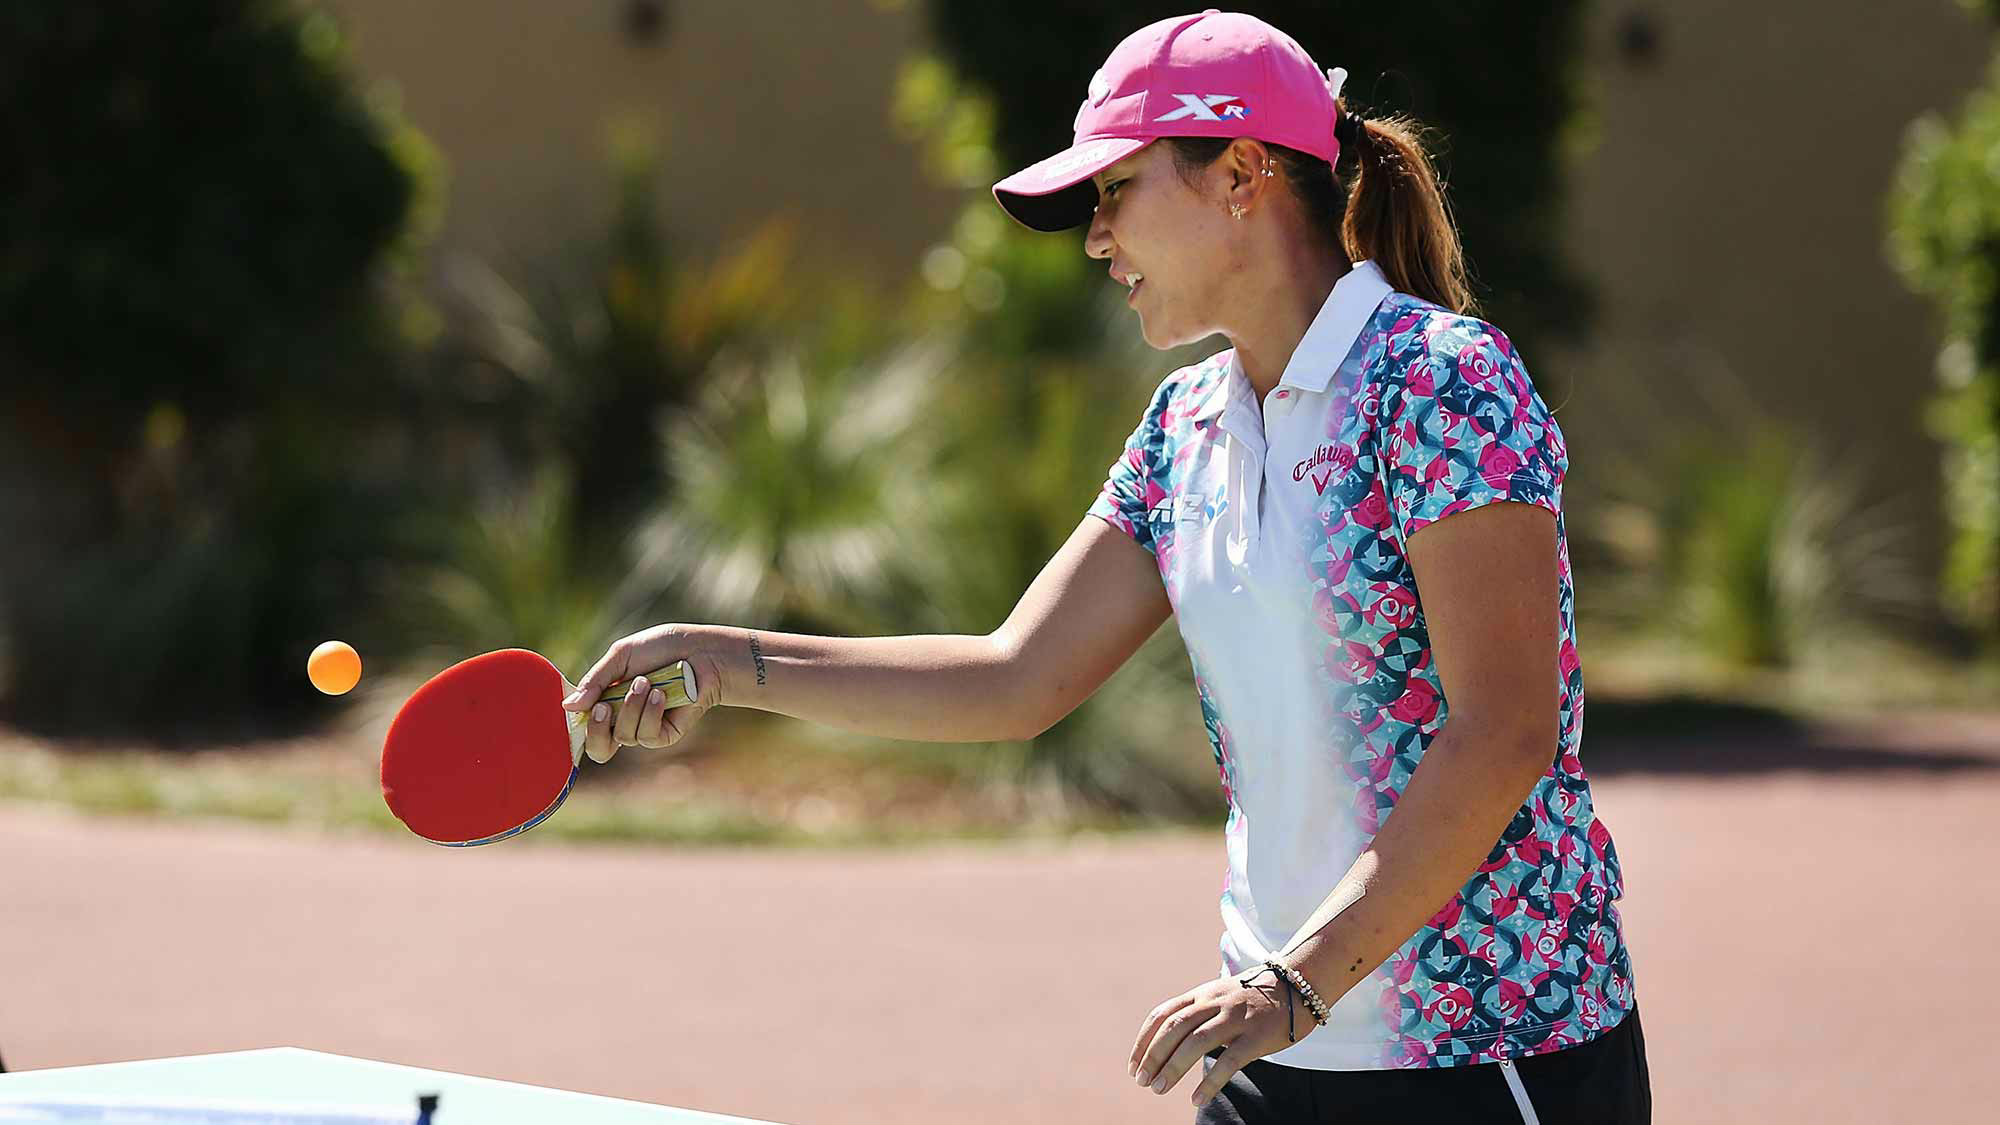 Lydia Ko plays ping-pong after her round at the ISPS Handa Women's Australian Open - Day 2